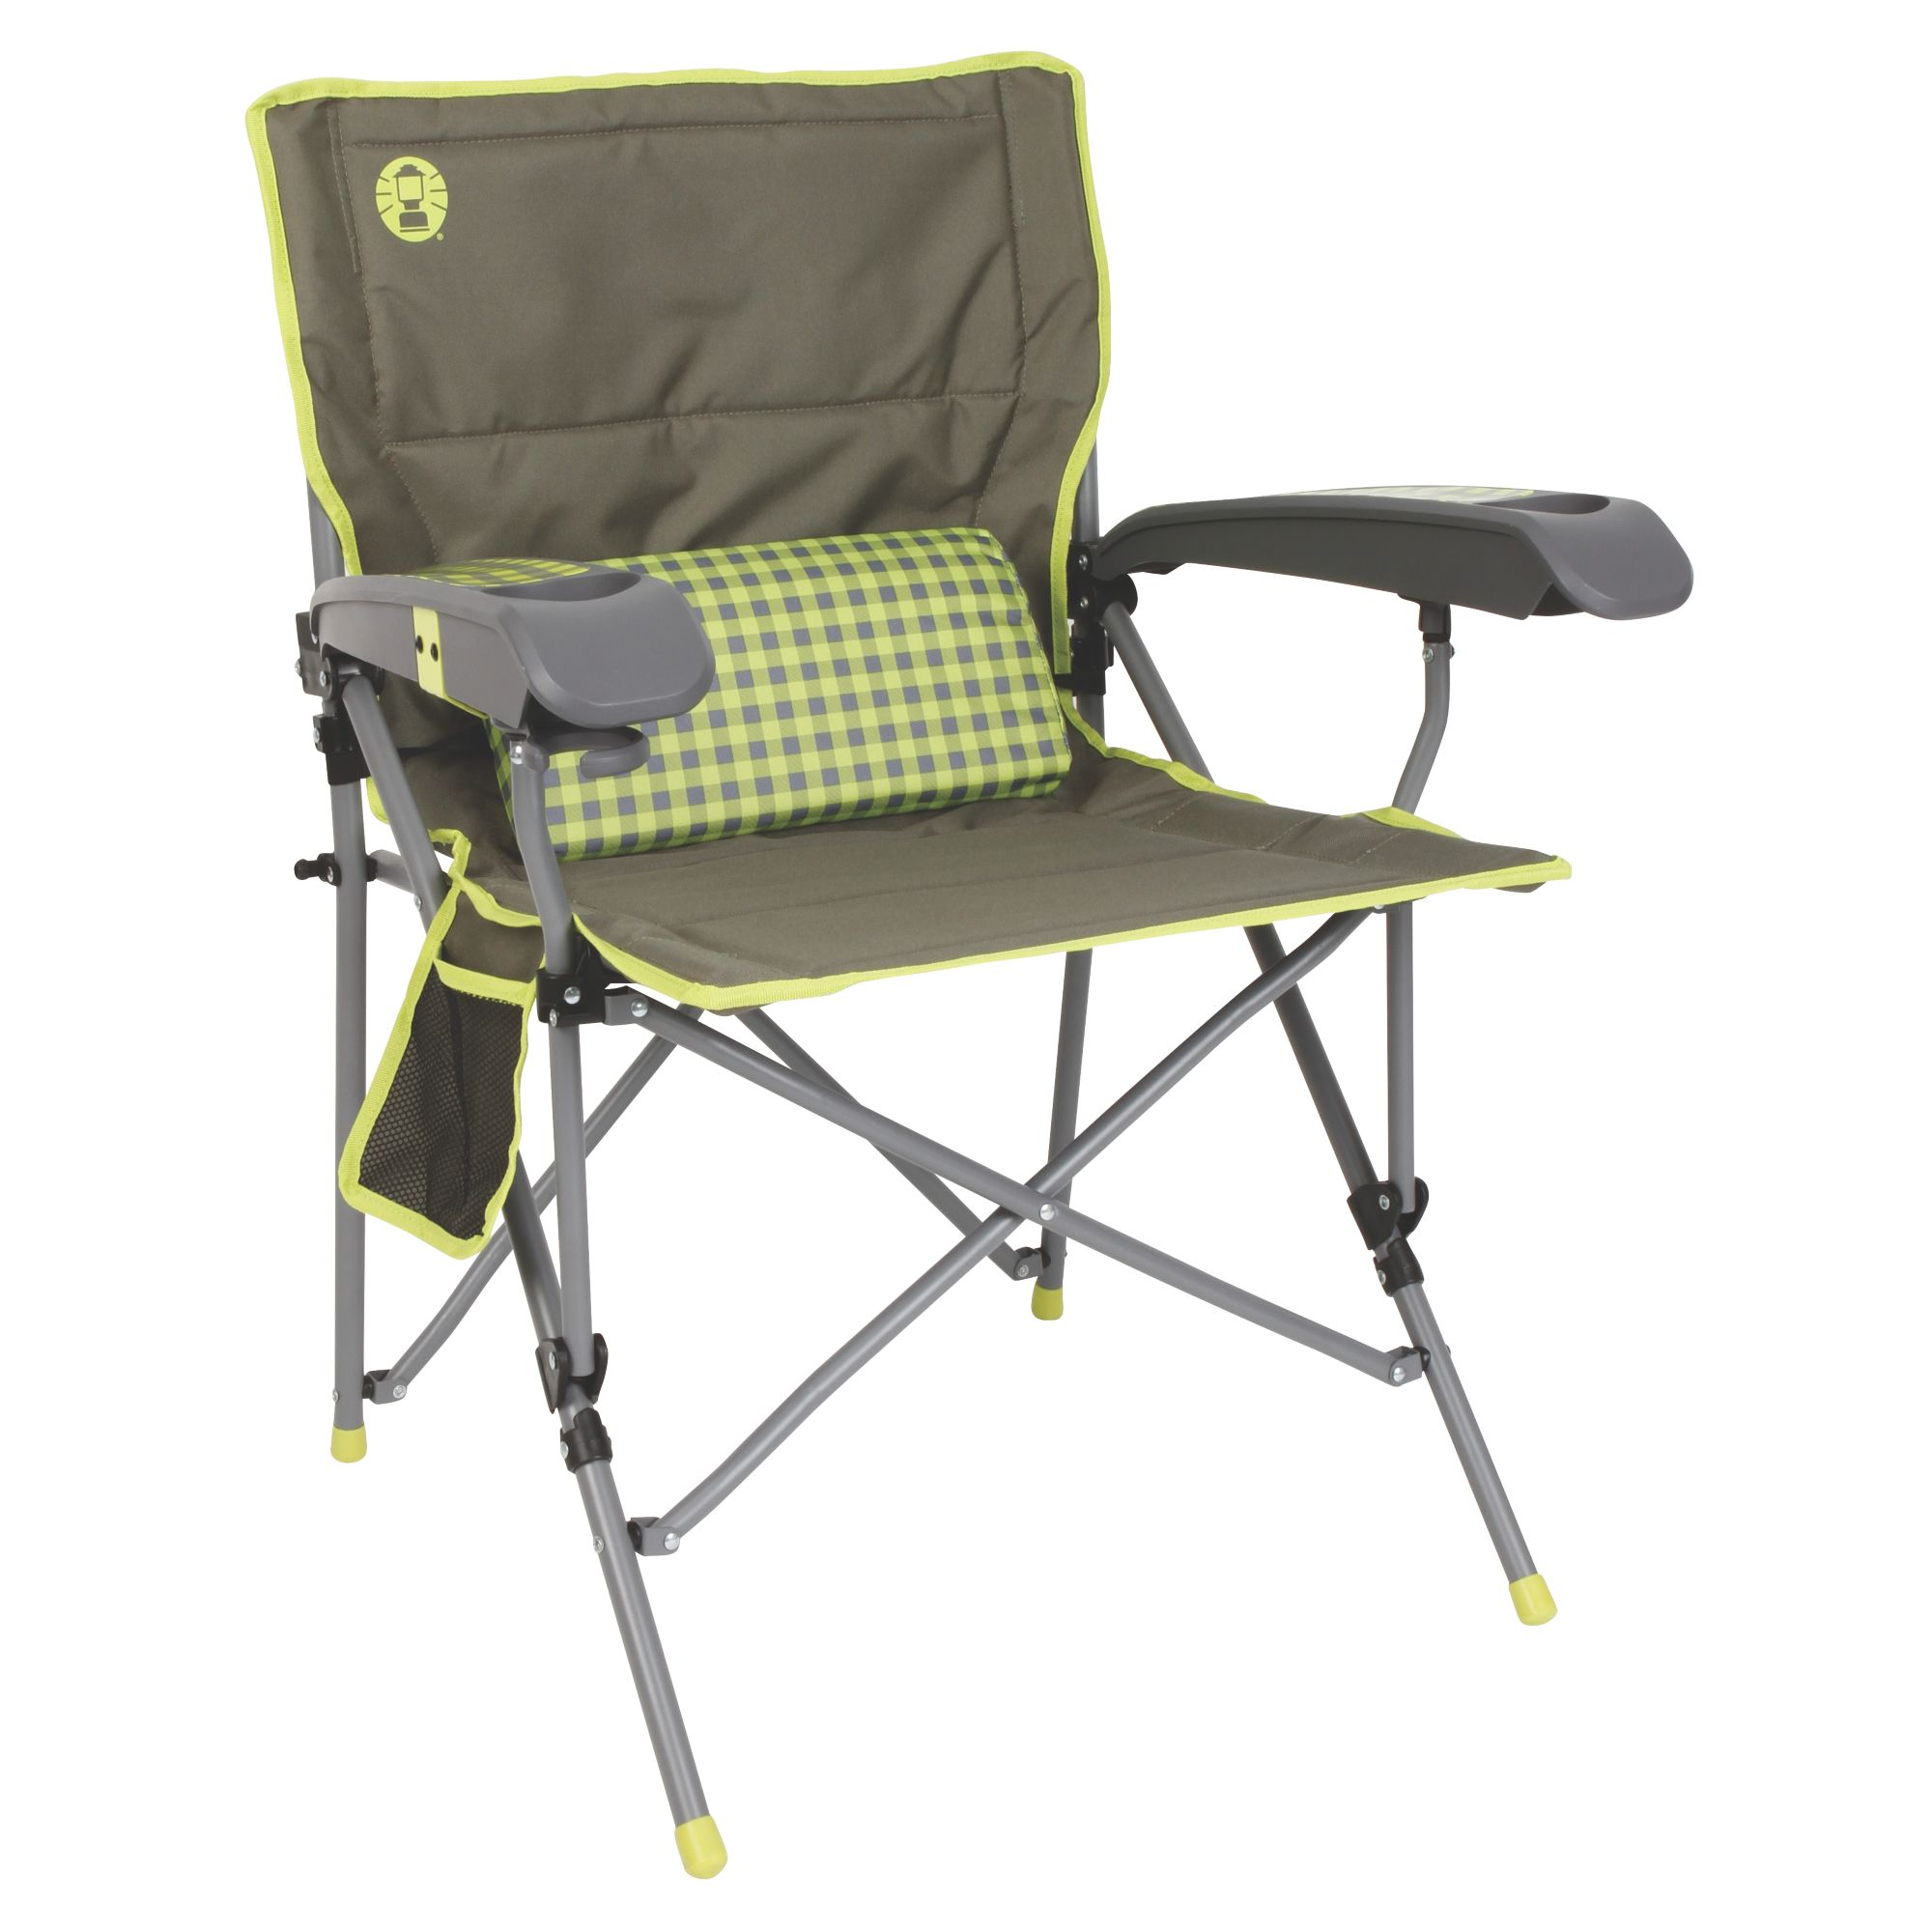 Coleman camp chairs -